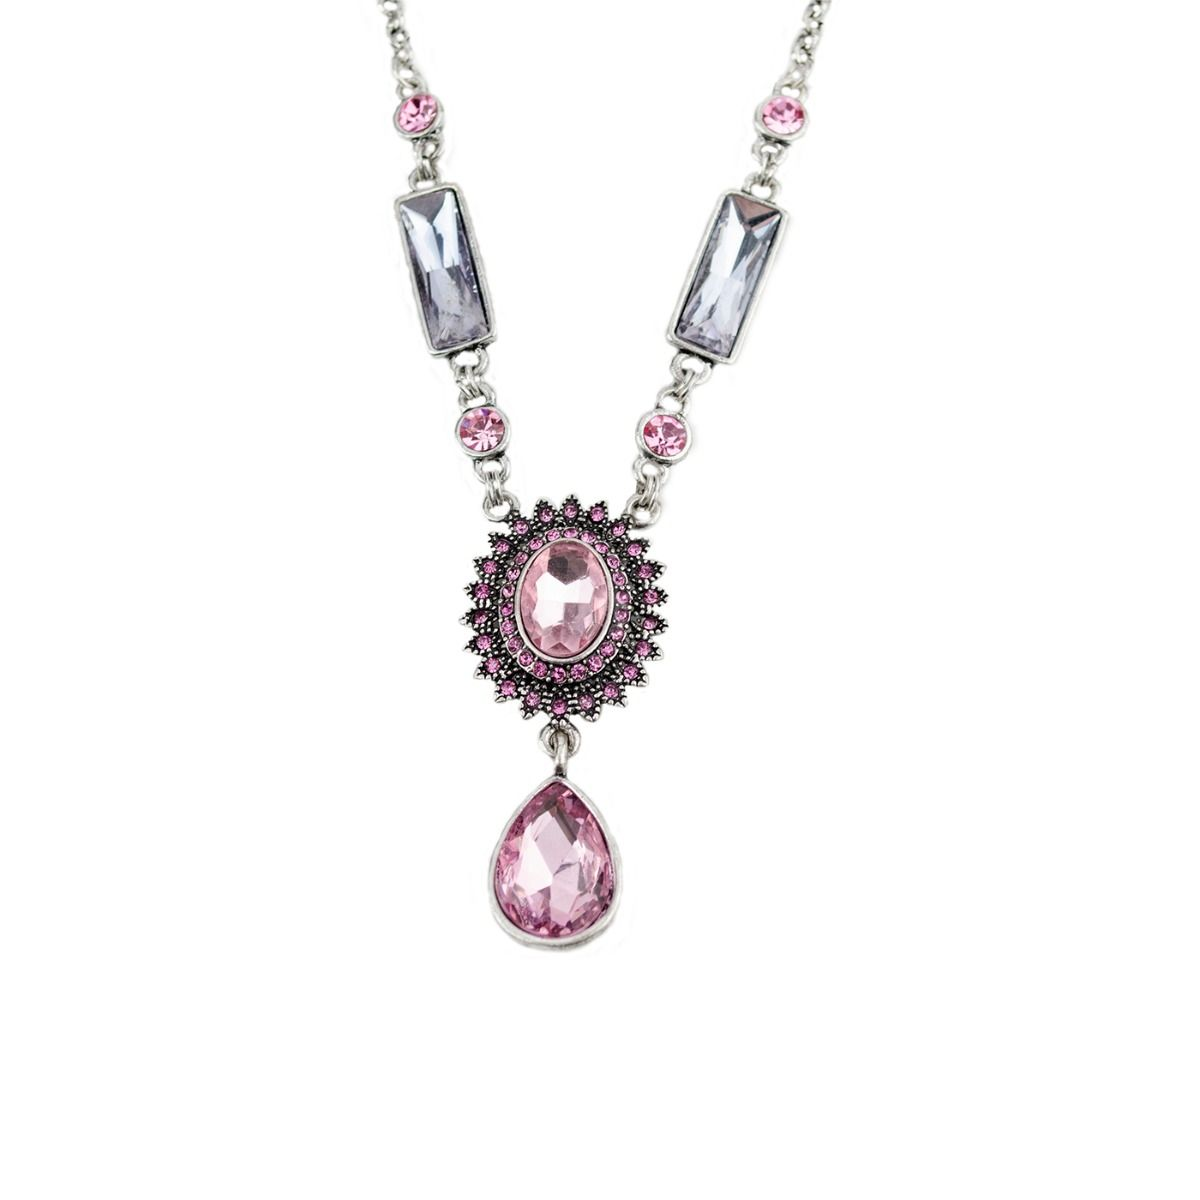 Fiorelli Fashion Imitatoin Oxidised Silver Plated Pink & Lilac Crystal Vintage Style Necklace 50cm + 8cm